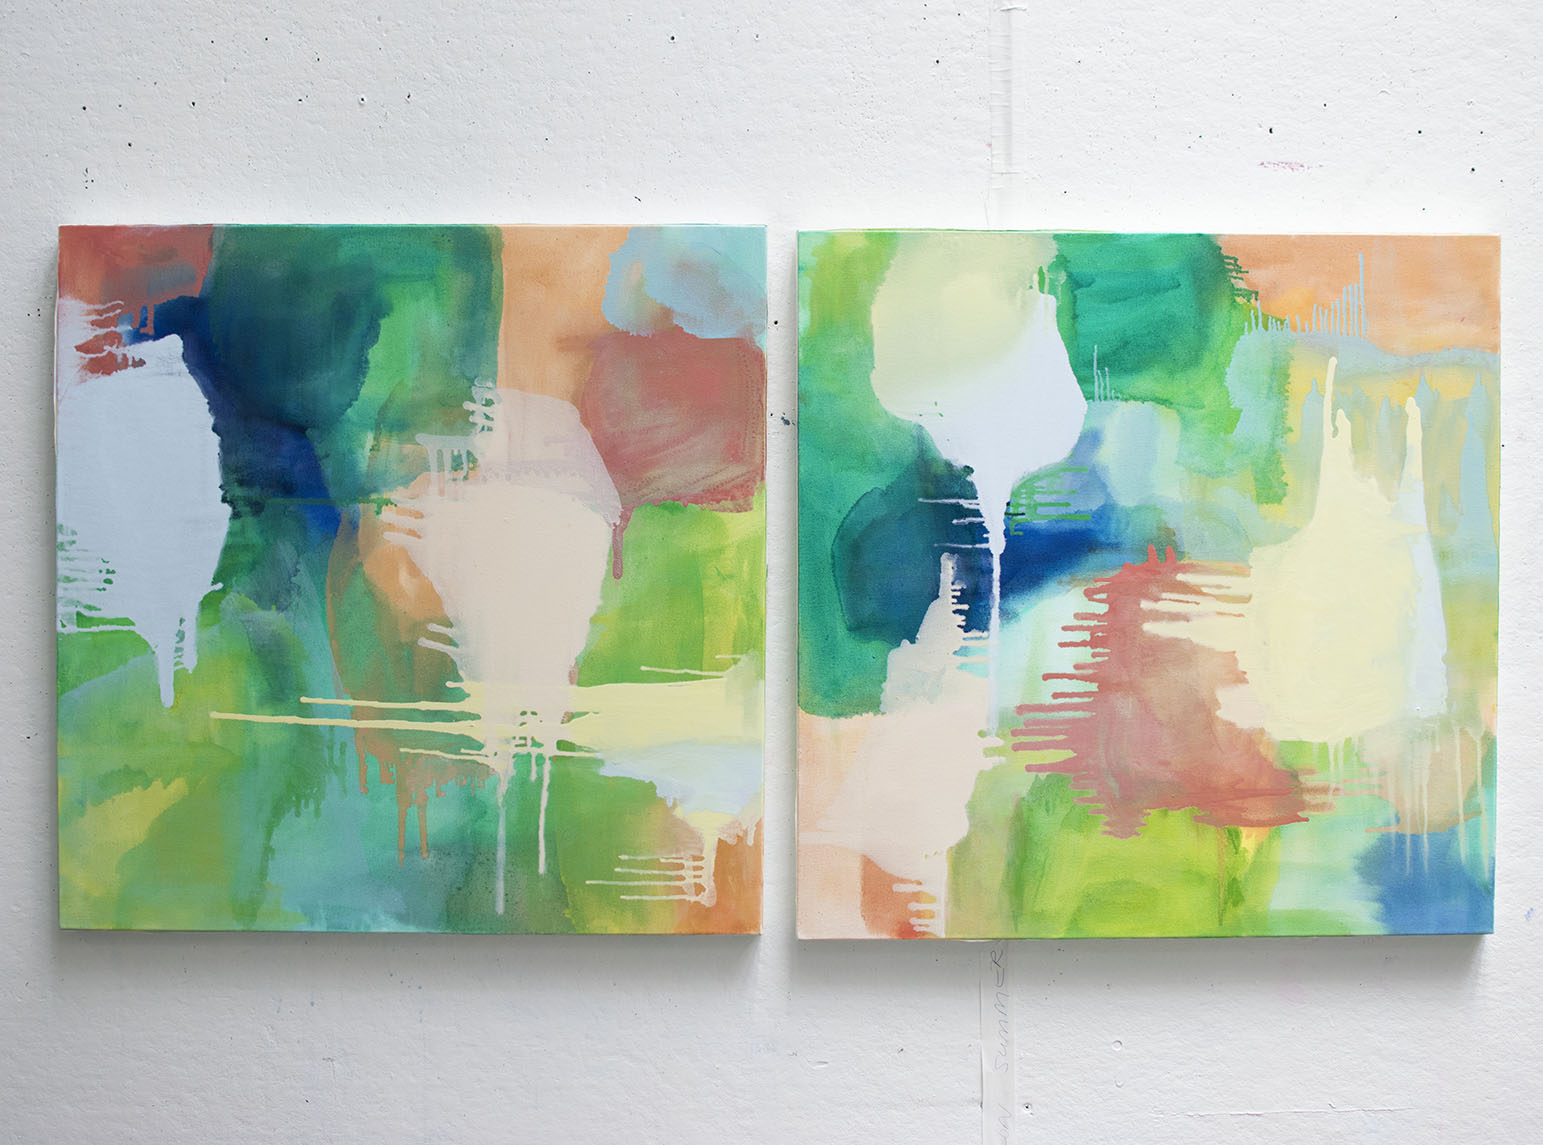 Islands of Summer , 2014, oil on canvas, 30 x 30 each. Pictured in studio. Commissioned piece.